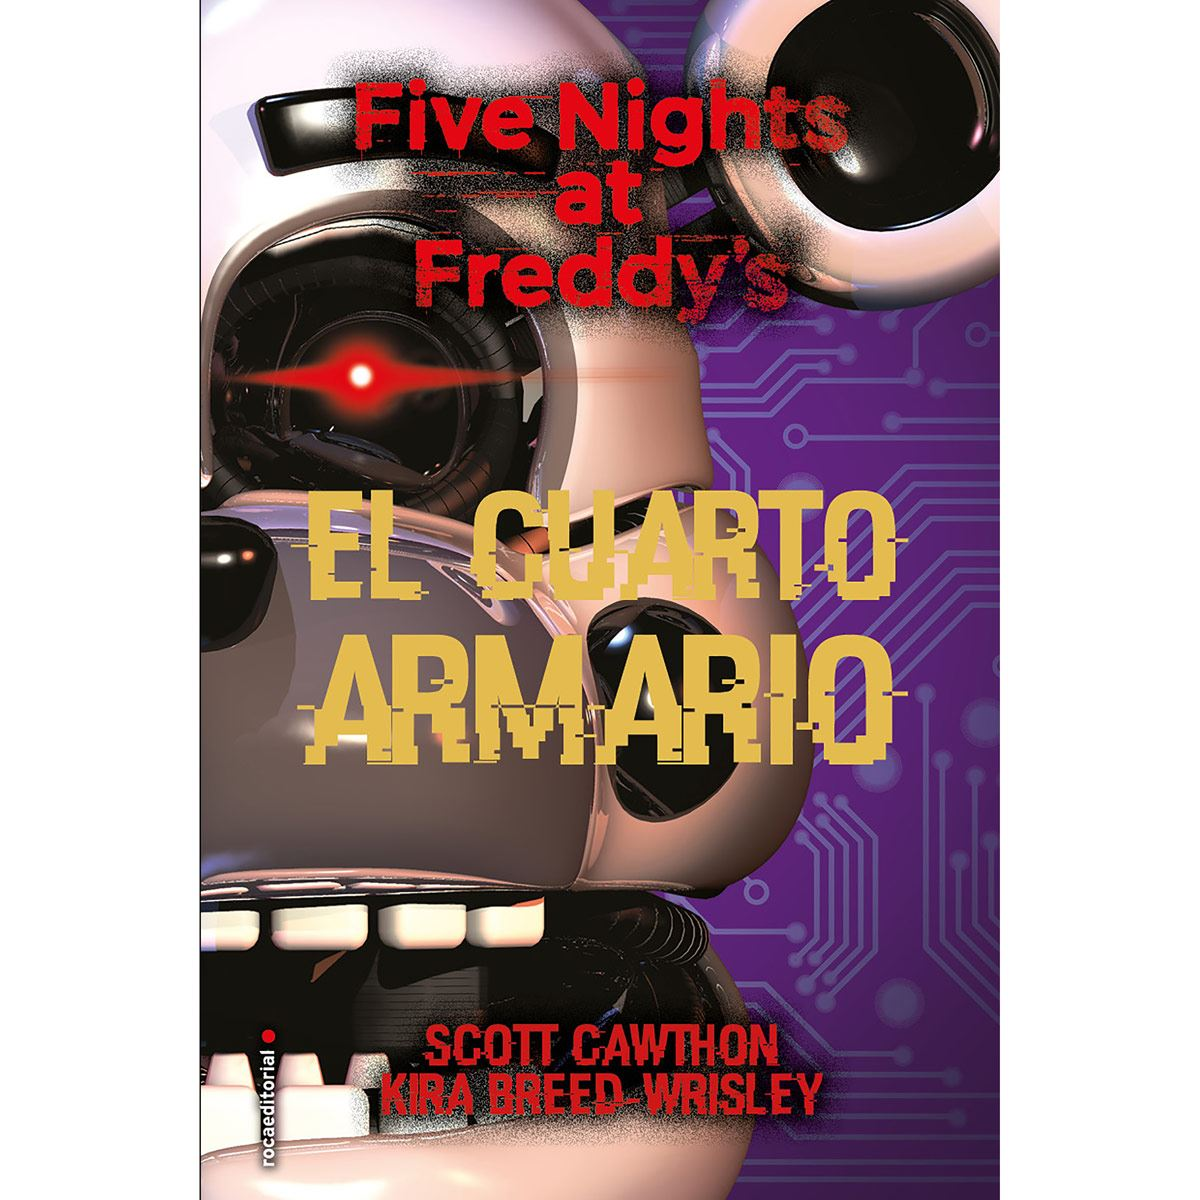 Five nights at freddys. The fourth close